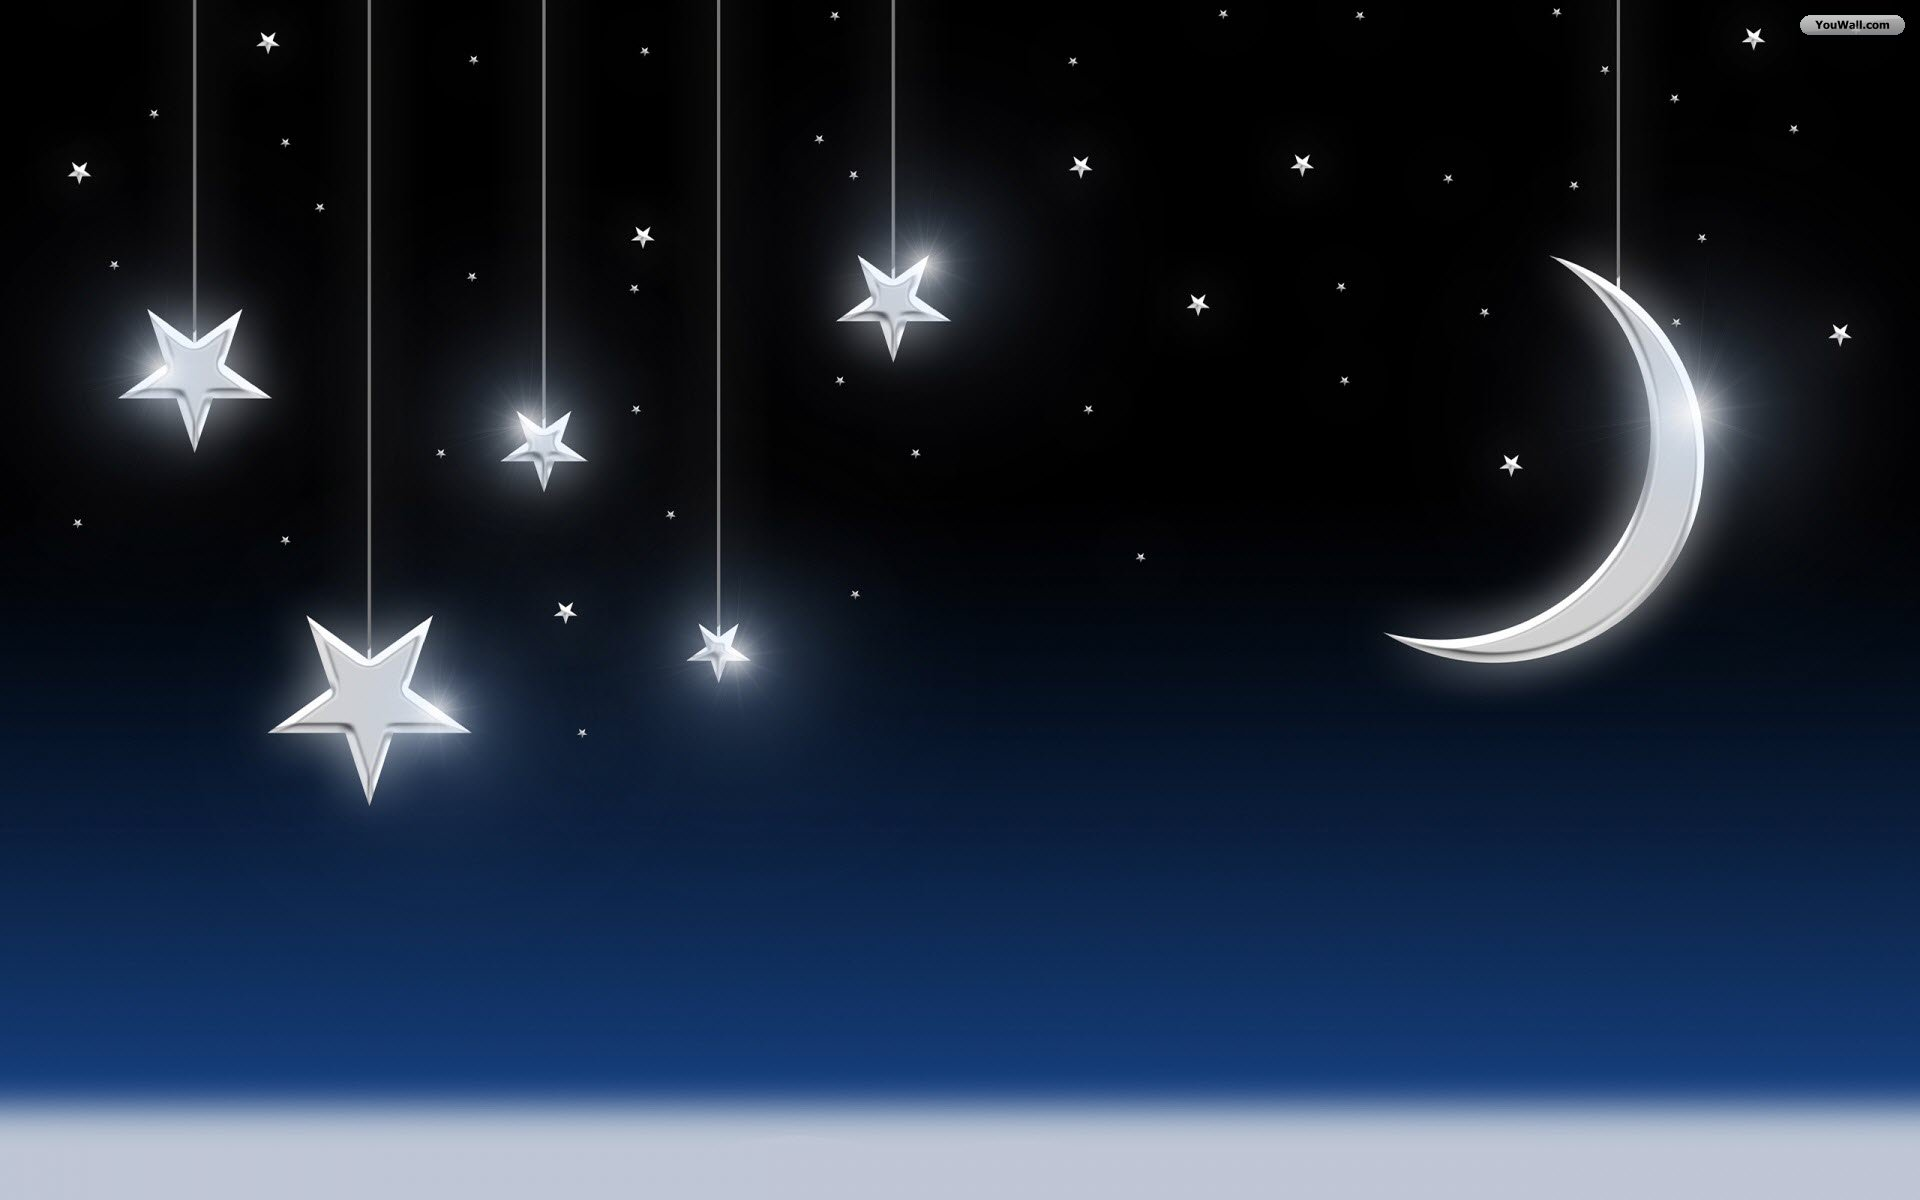 Night clipart moon star Clip AND galaxy MOON on